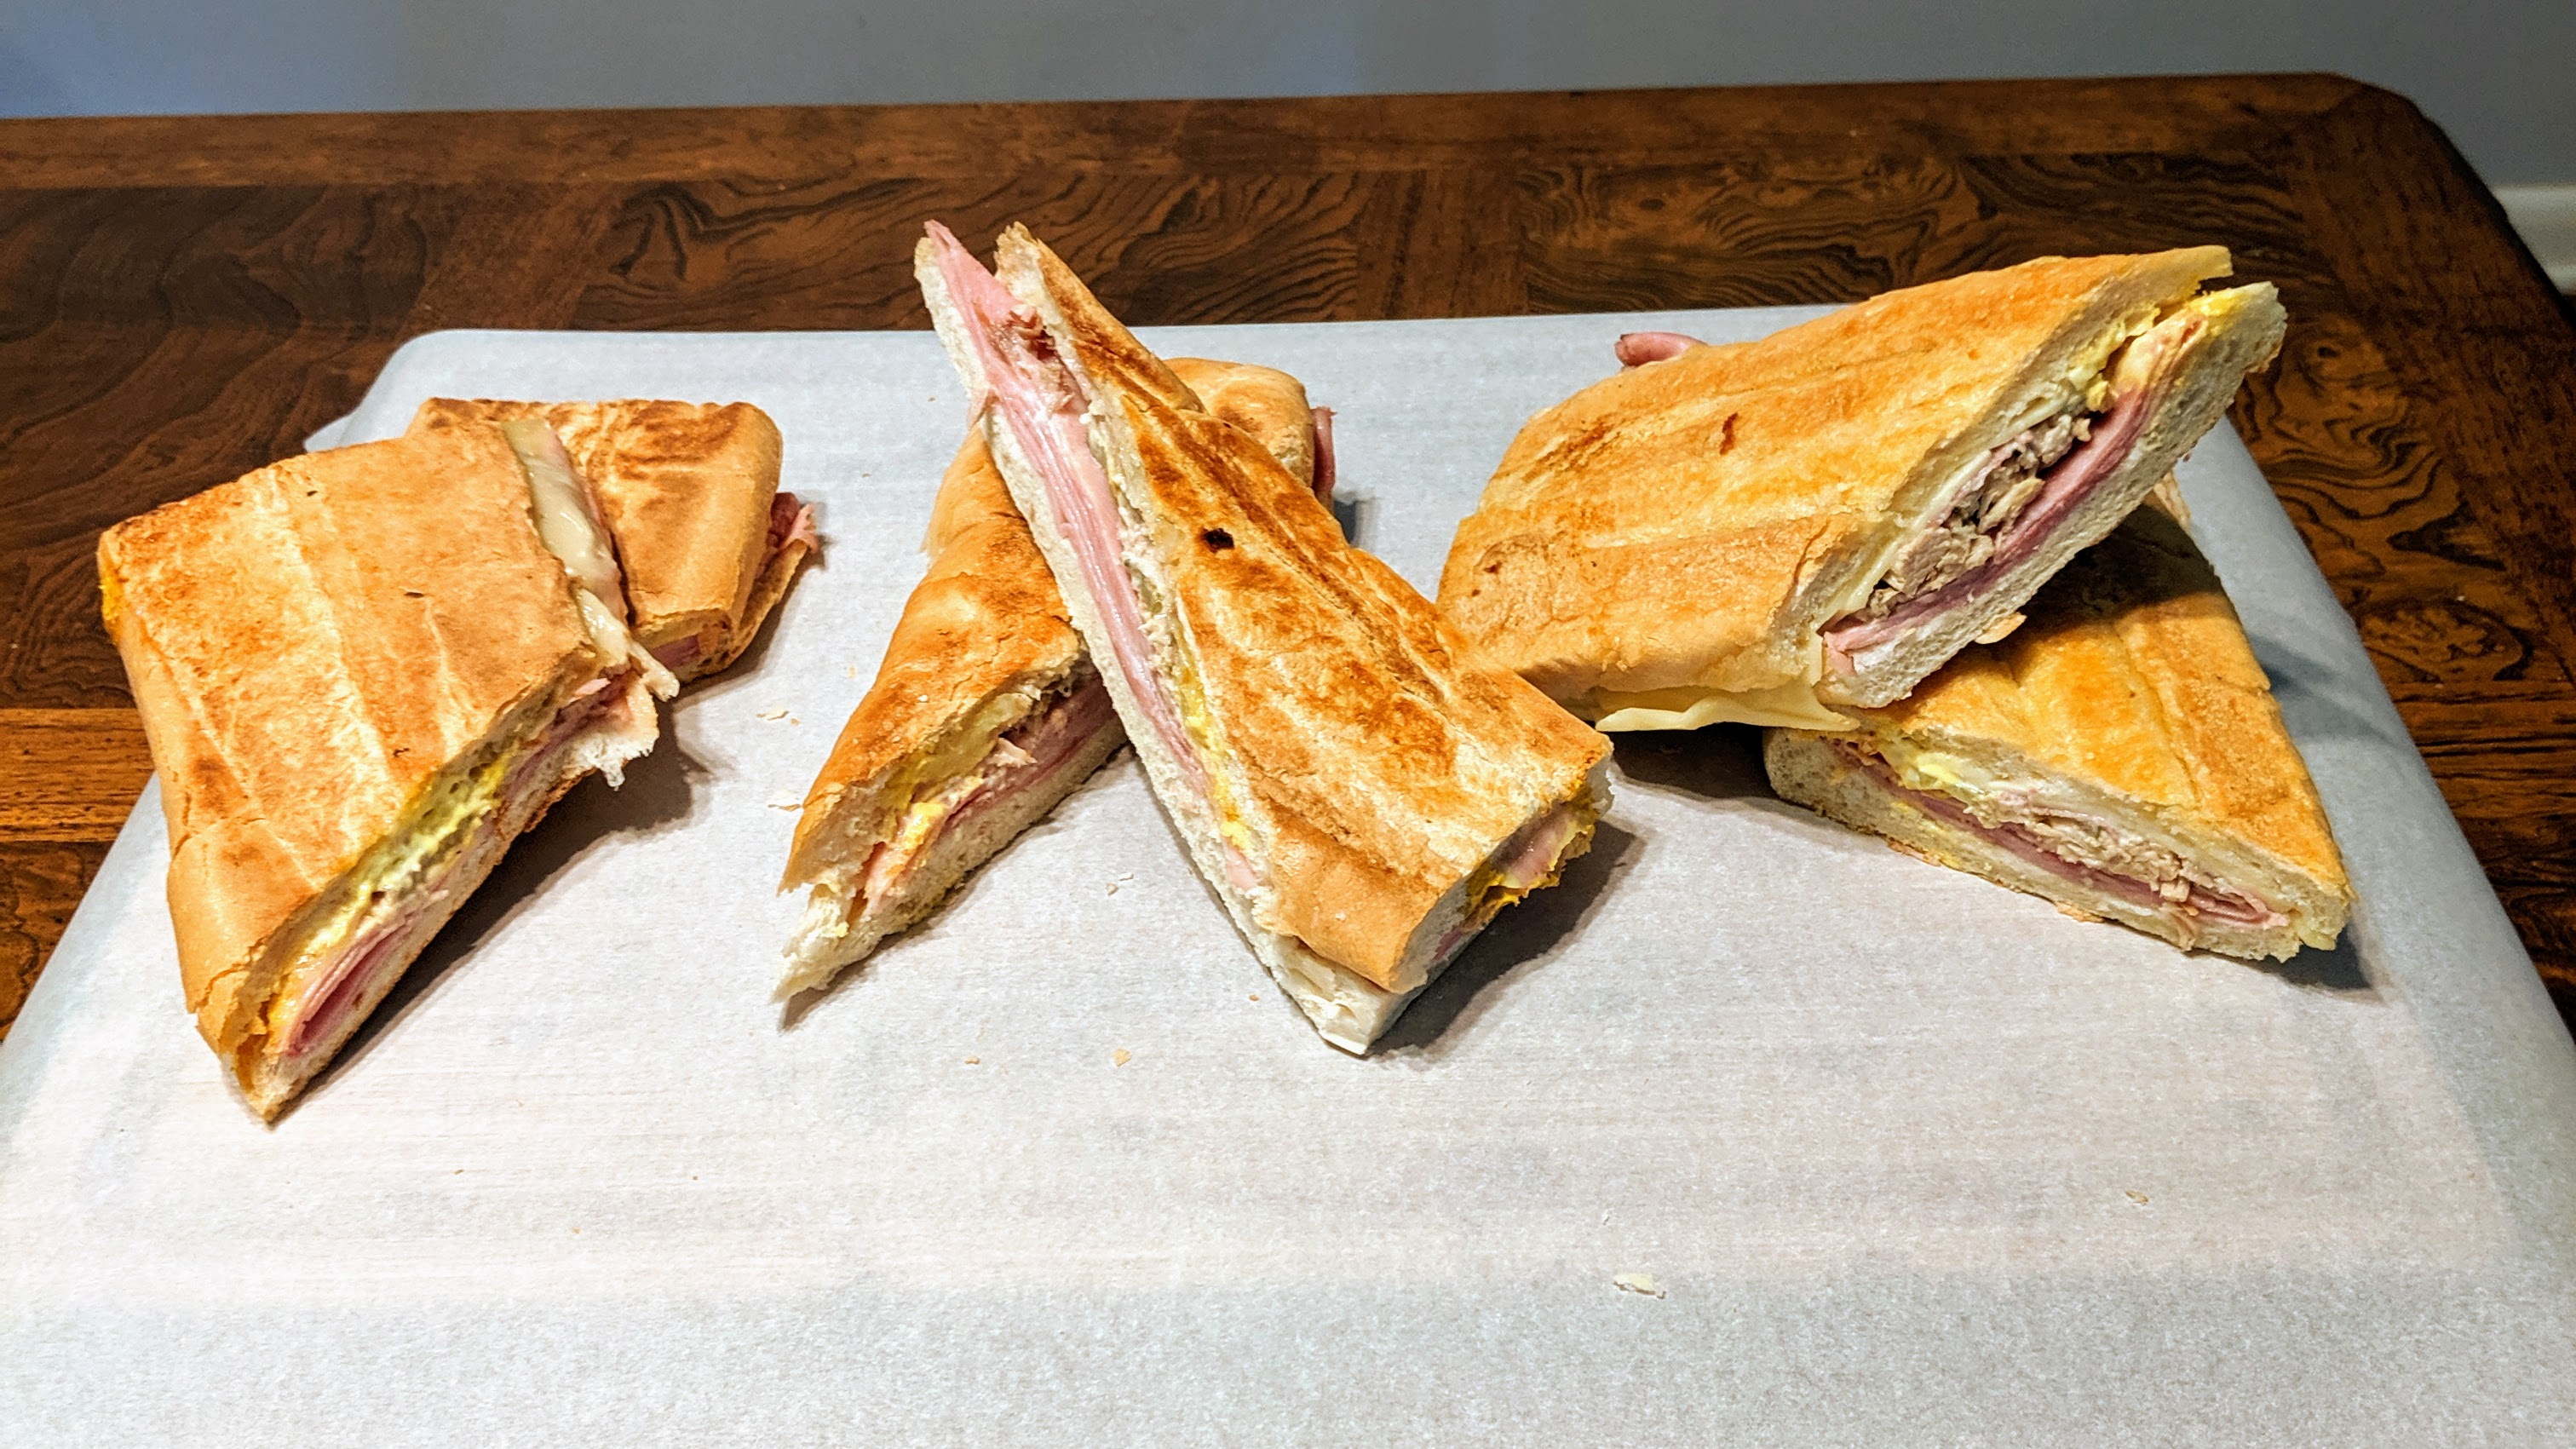 Cuban sandwiches from La Teresita, Arco Iris and West Tampa Sandwich Shop.